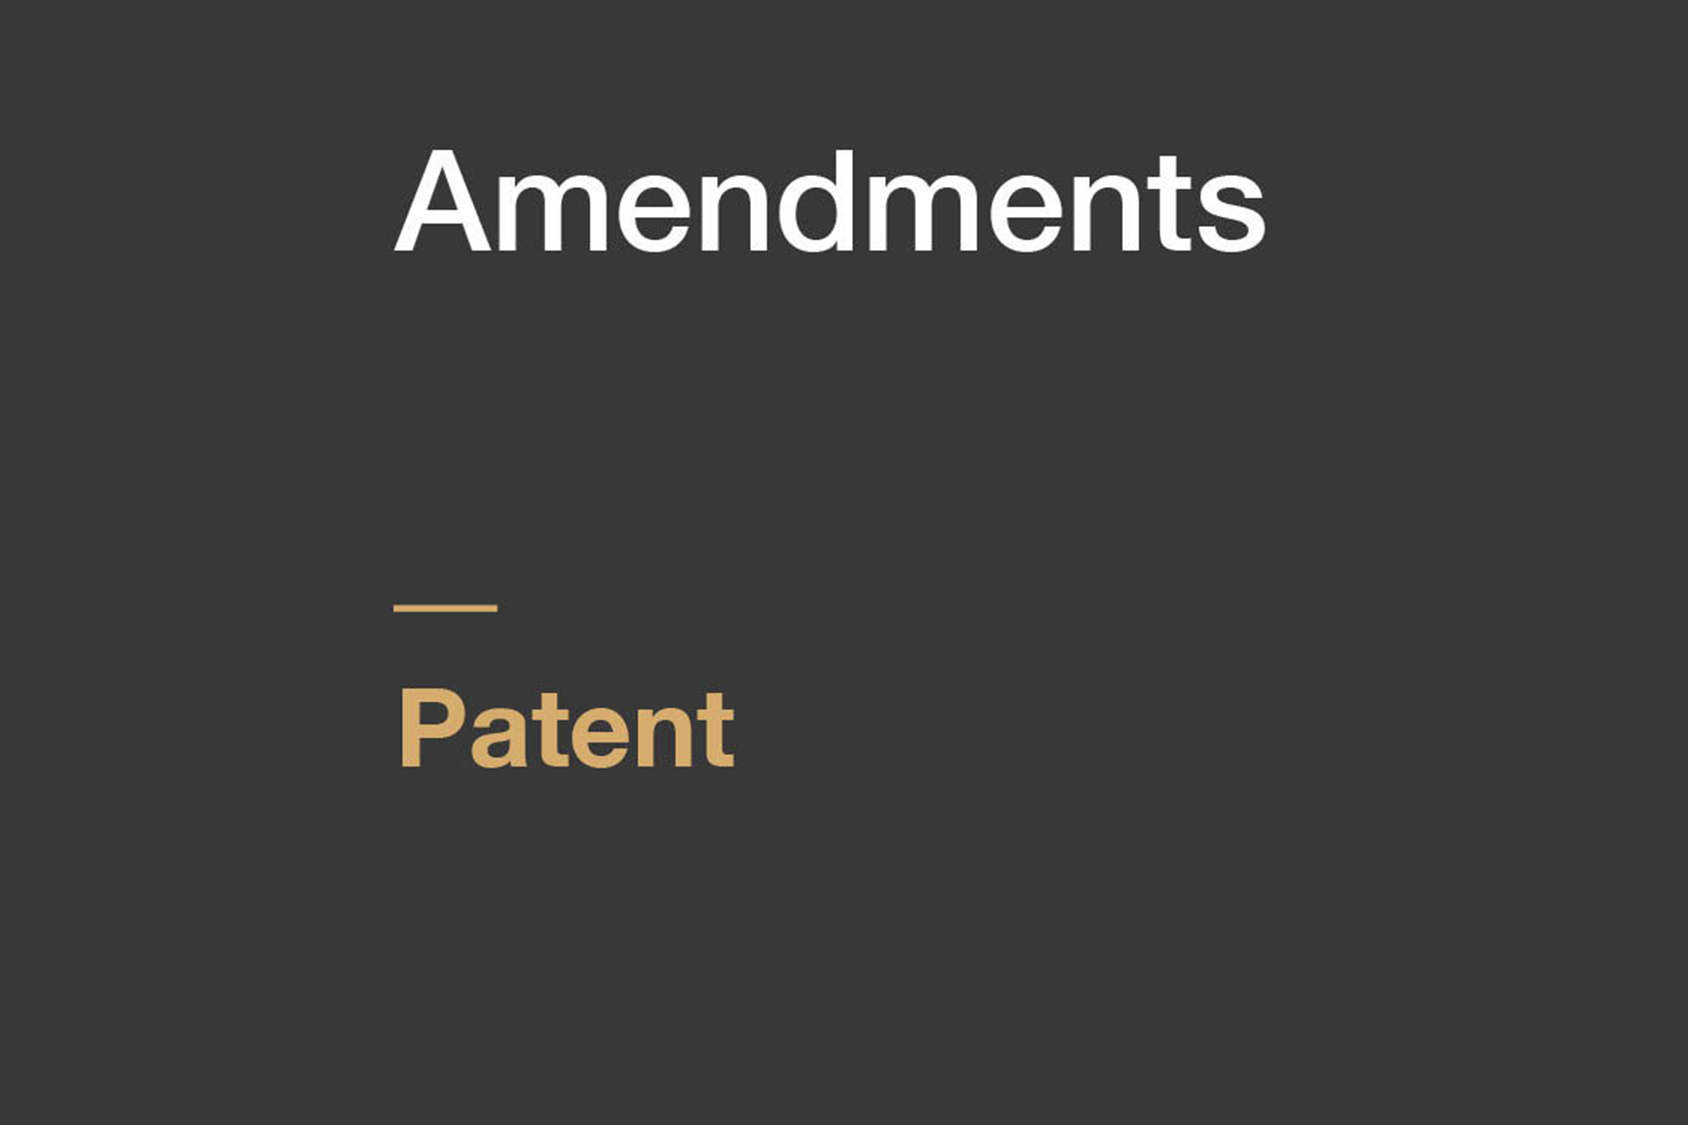 Patents 2nd Amendment Rules 2020